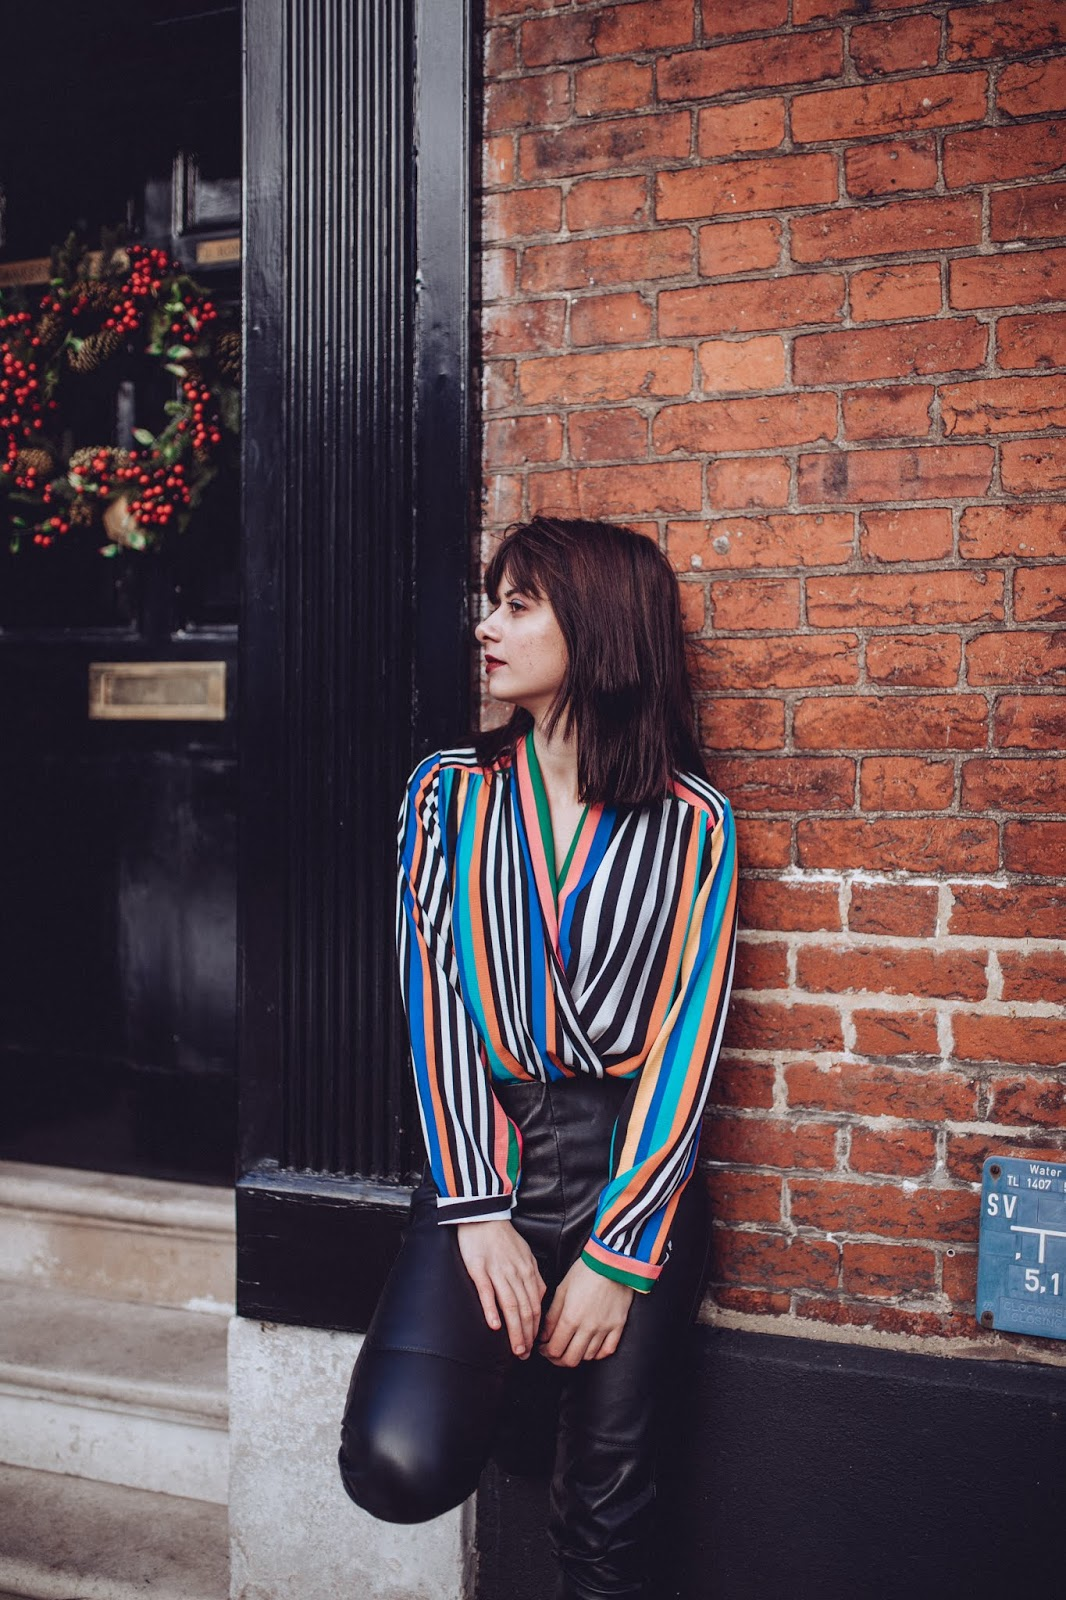 Me next to a red brick wall wearing a rainbow stripped top and faux leather trousers